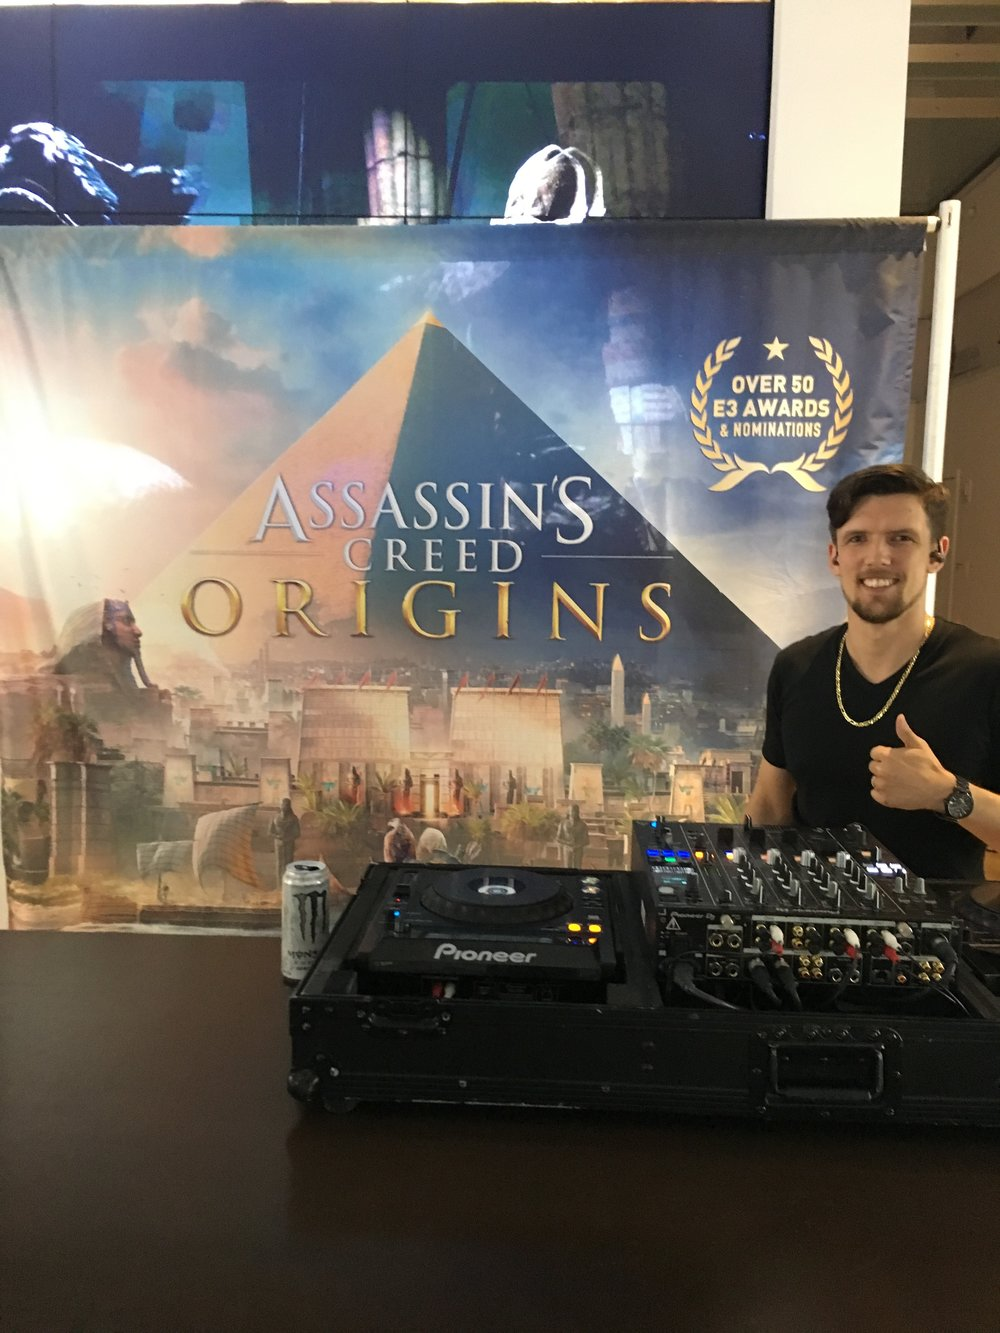 DJ CoolHand Assassins Creed Origins Microsoft Store NYC 1.jpeg